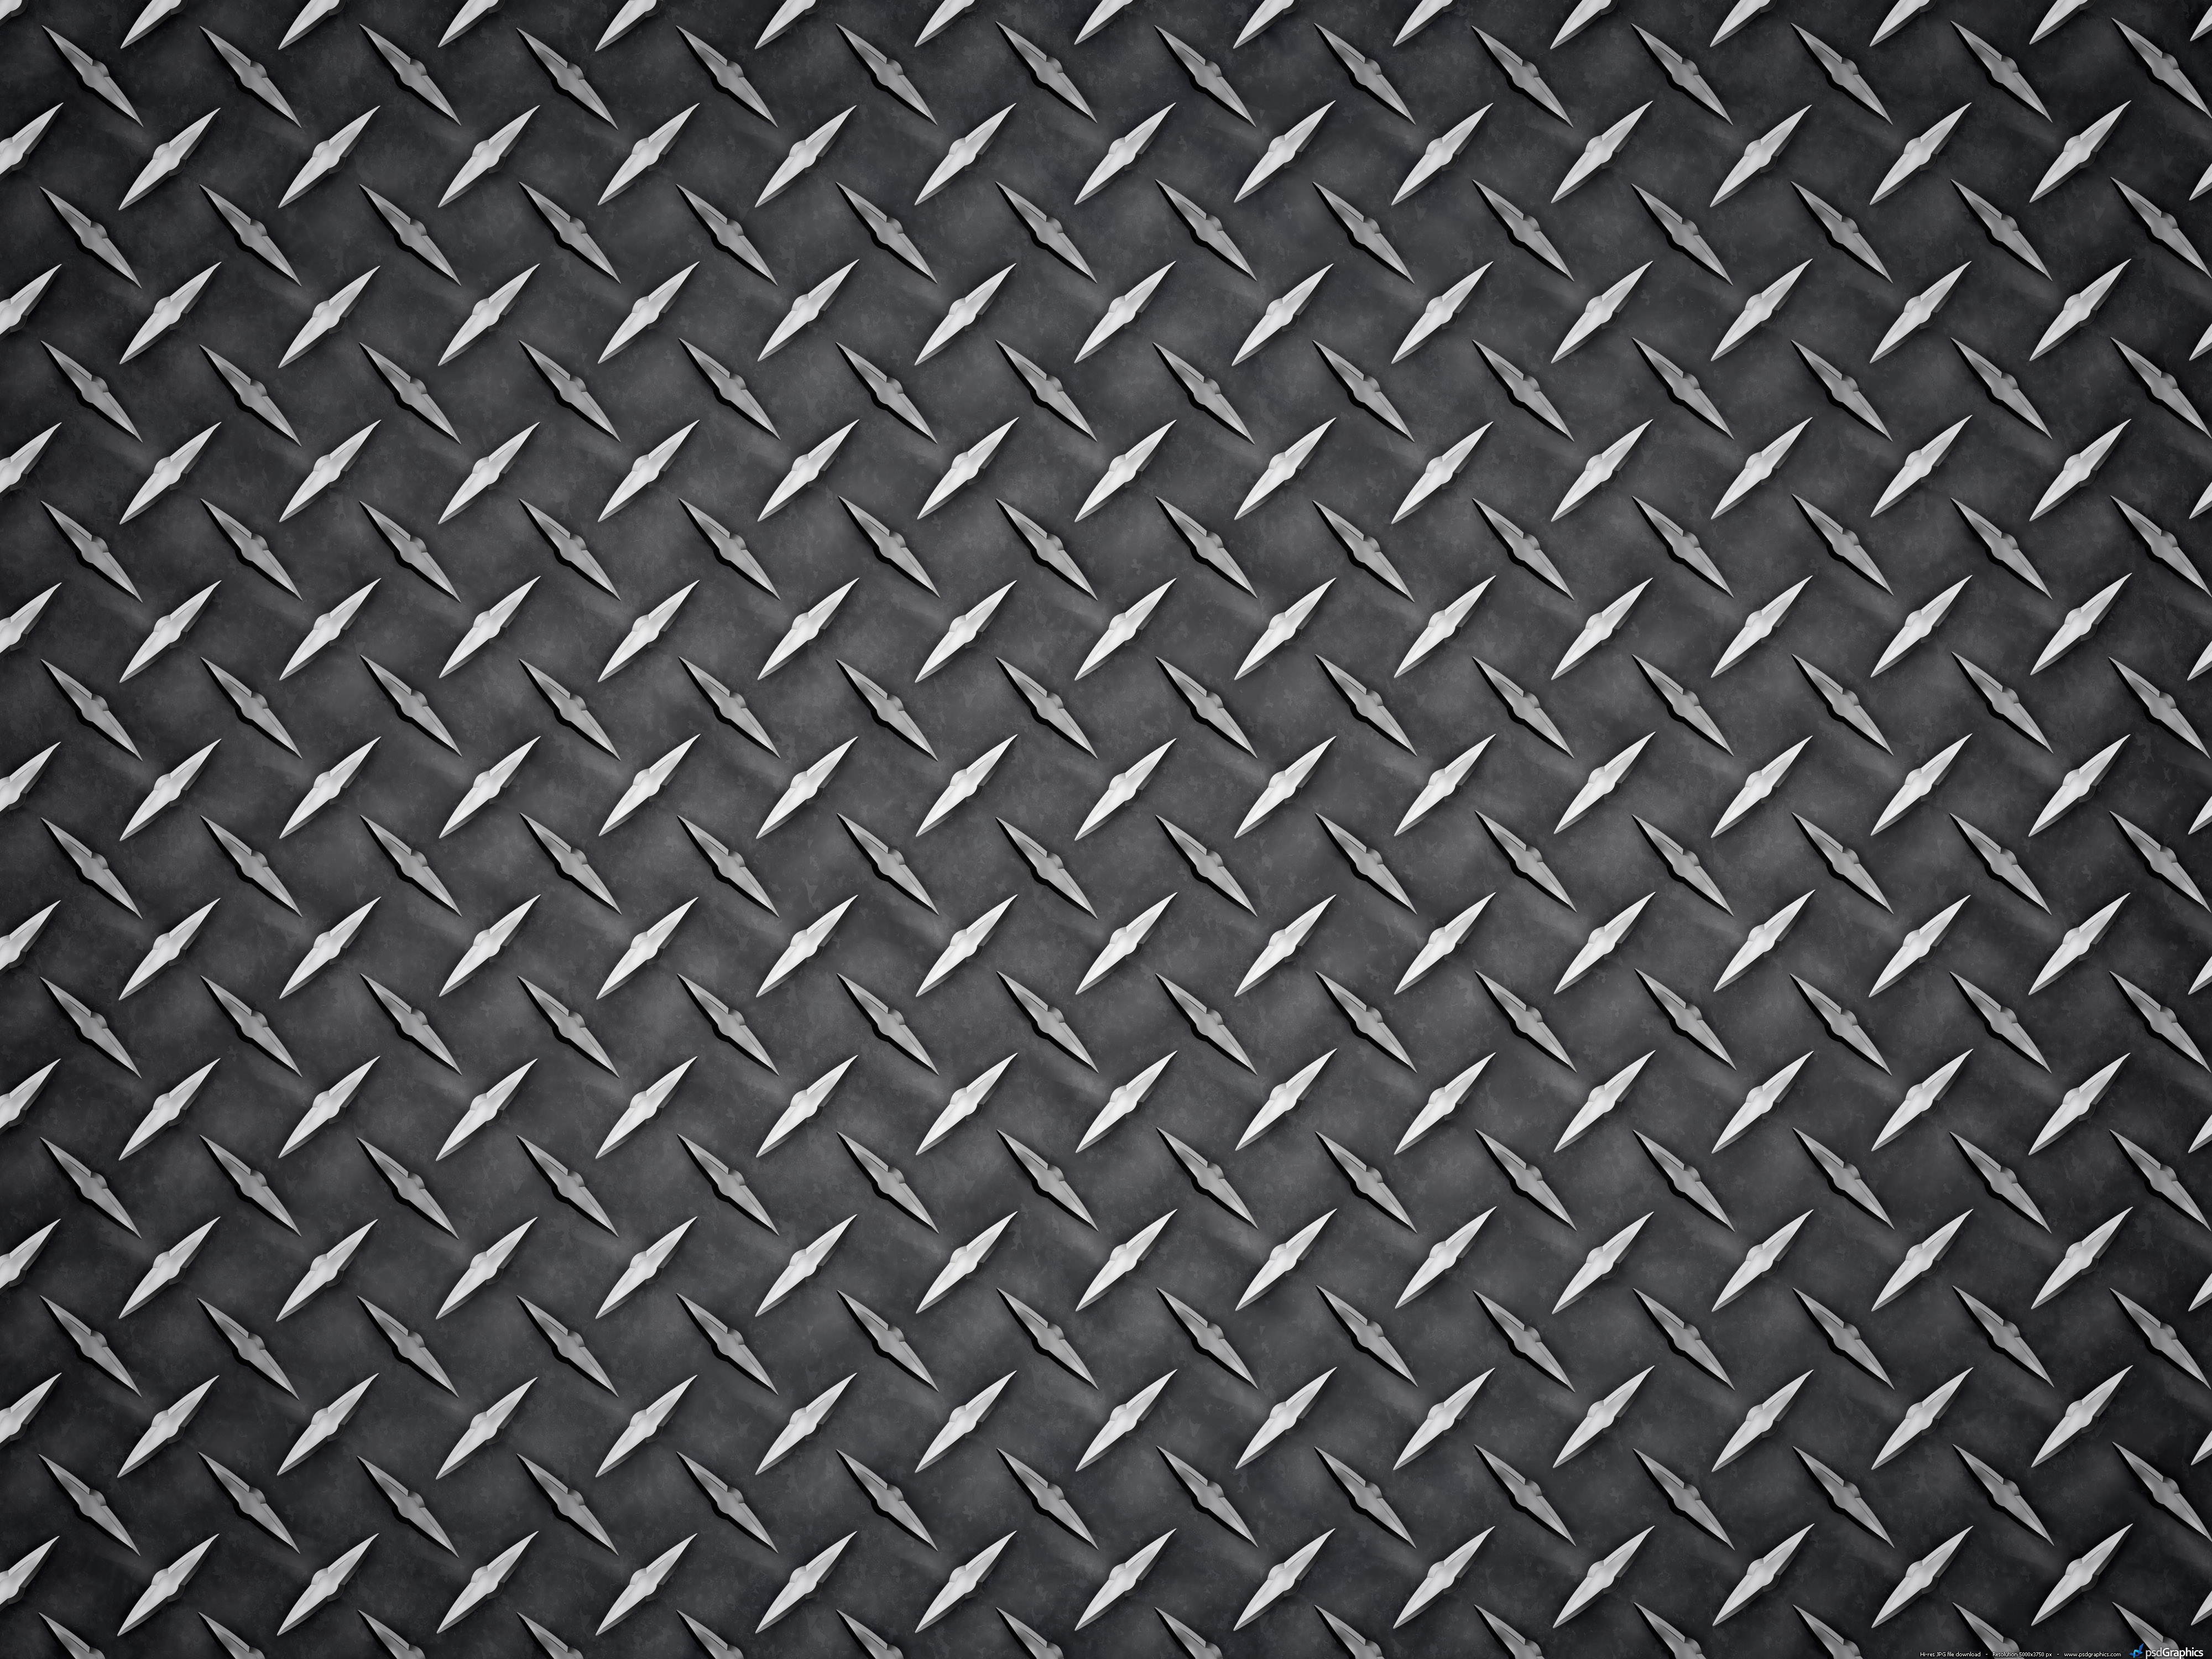 Metal Diamond Plate Texture Steel Background